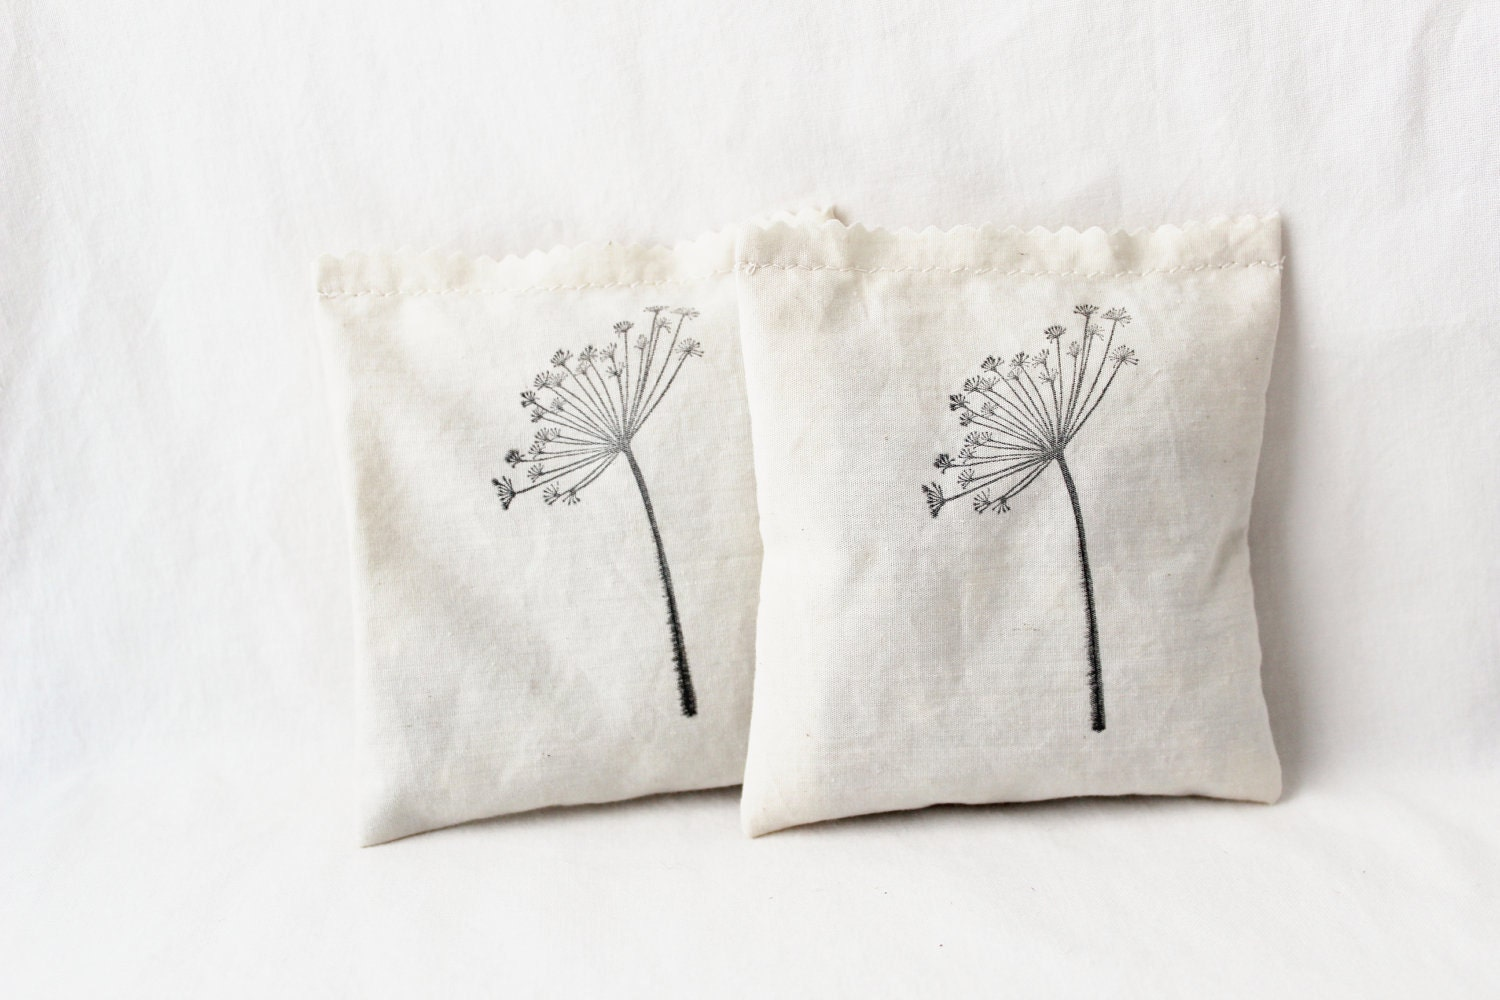 Dandelion Botanical Sachets Make a Wish Modern Minimal Natural Home Decor - Gardenmis